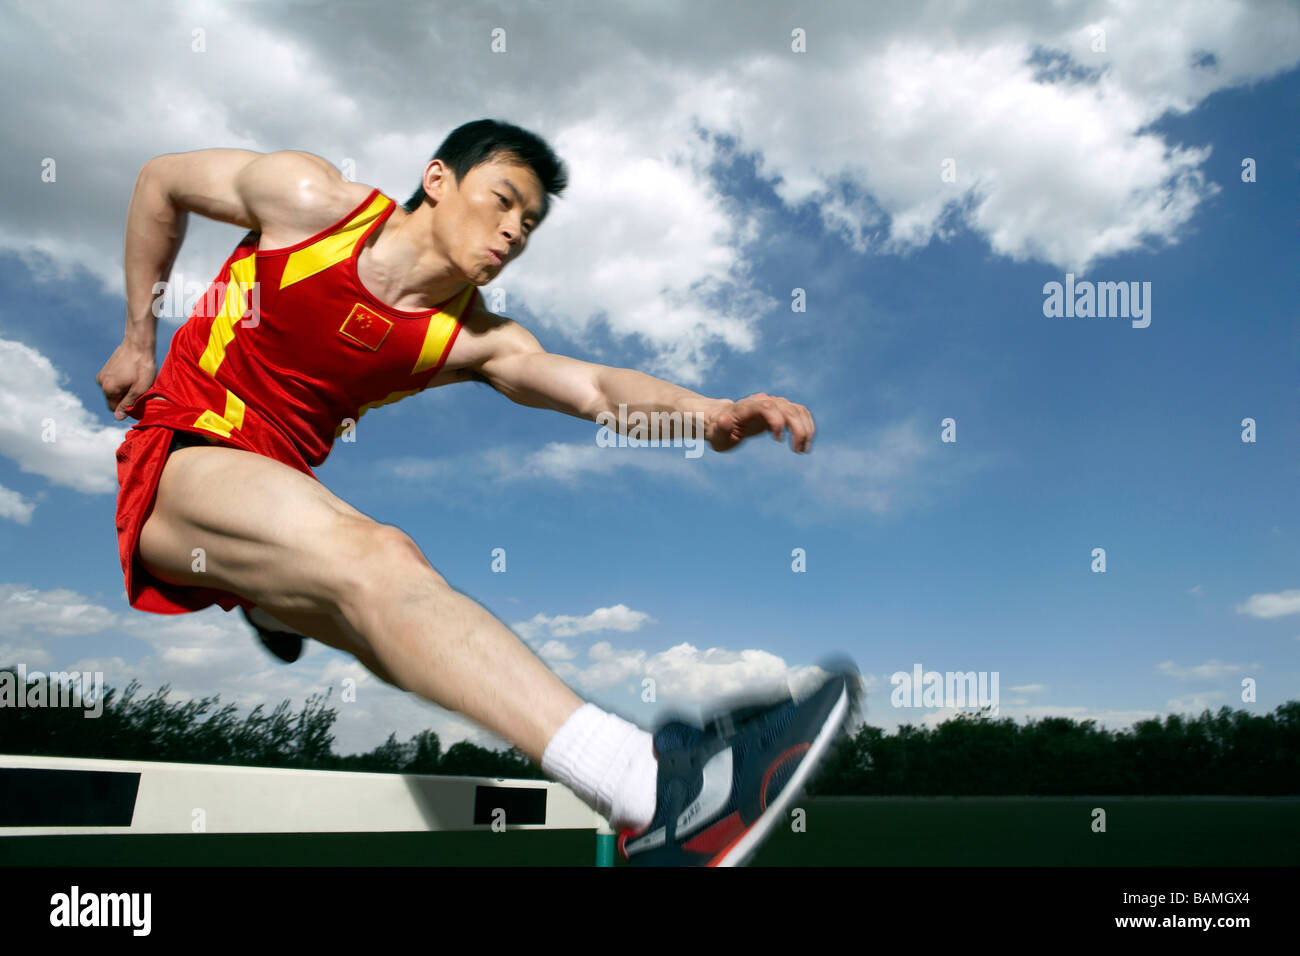 Athlete Jumping Over A Hurdle - Stock Image